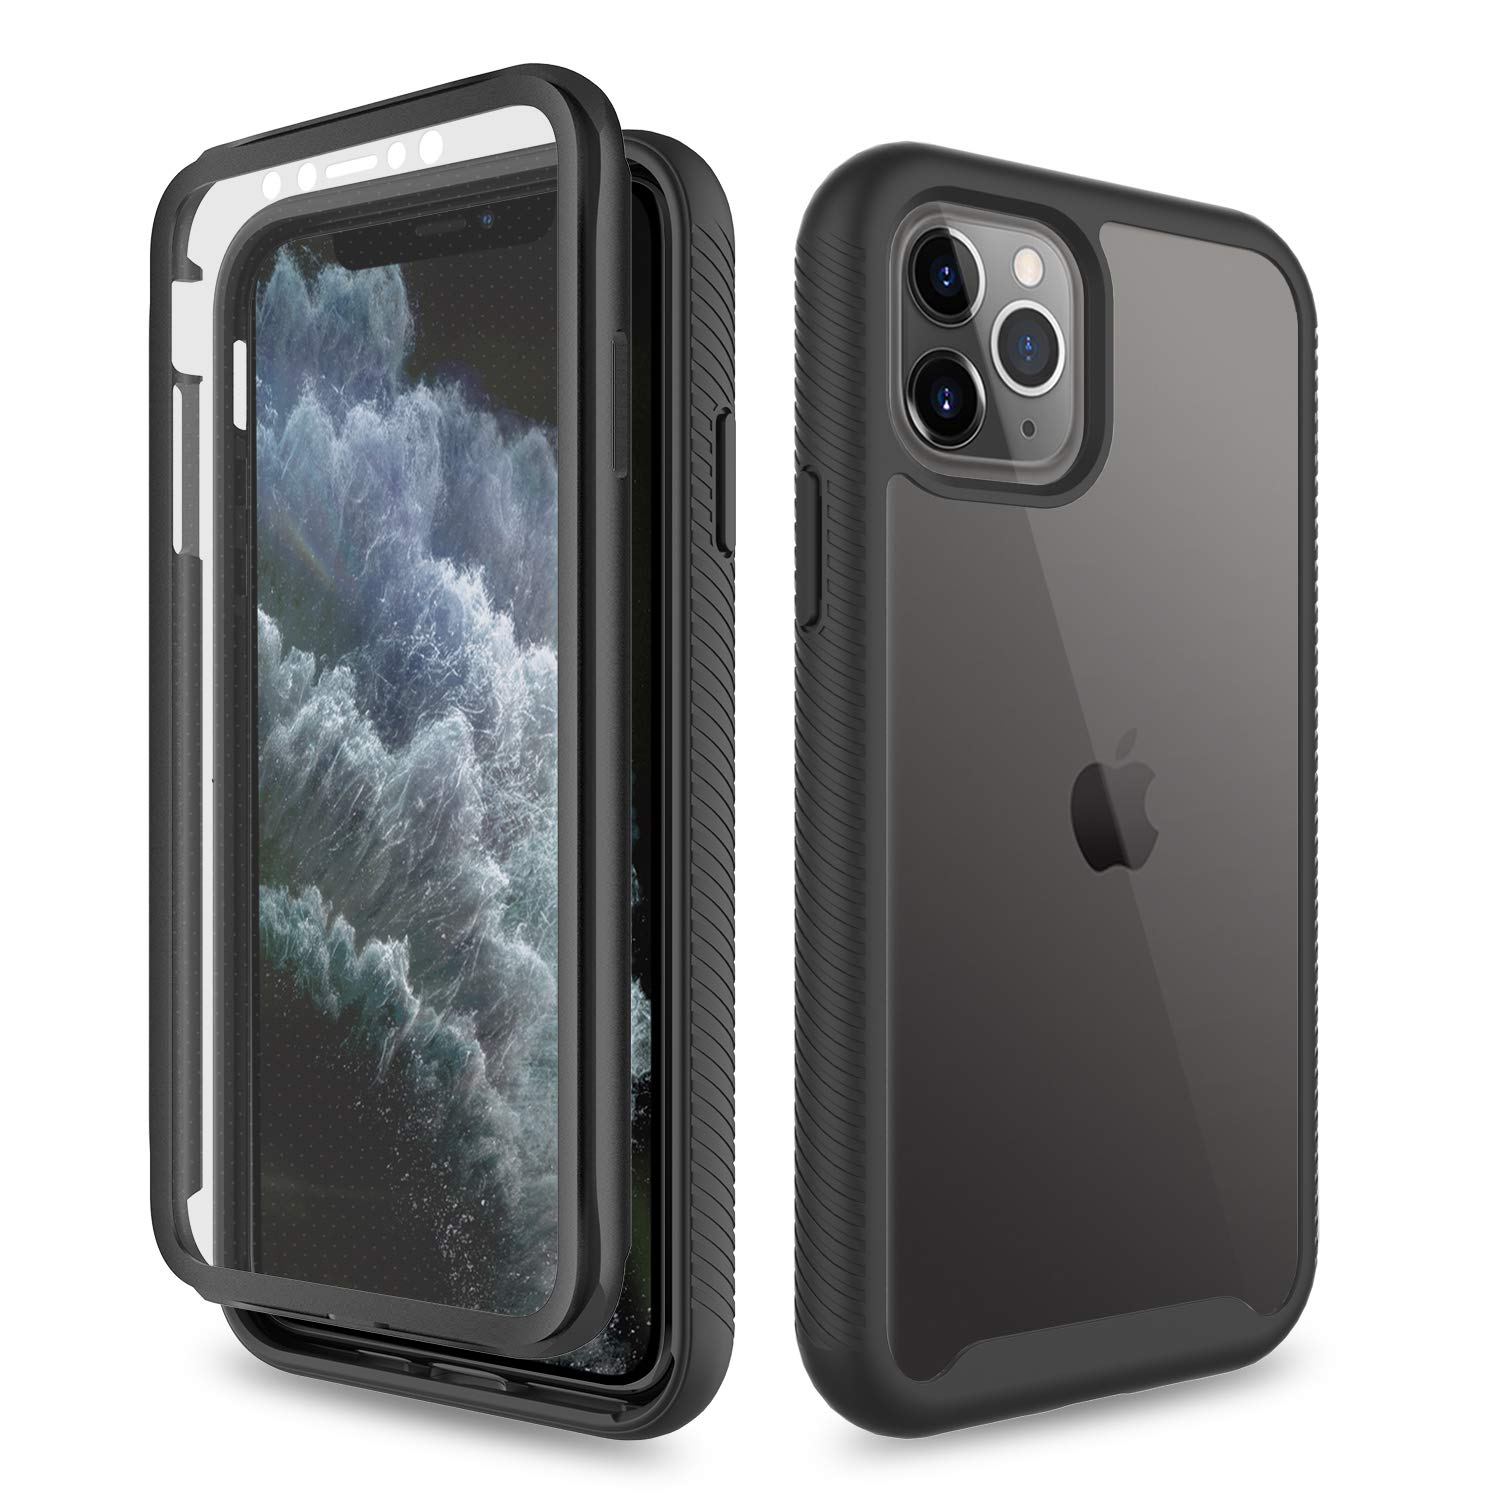 Yunerz Compatible iPhone 11 Pro Max Case, iPhone 11 Pro Max Case with Built-in Screen Protector Shockproof Heavy Duty Three Layer Full-Body Protection Case for iPhone 11 Pro Max 2019 6.5inch(Black)